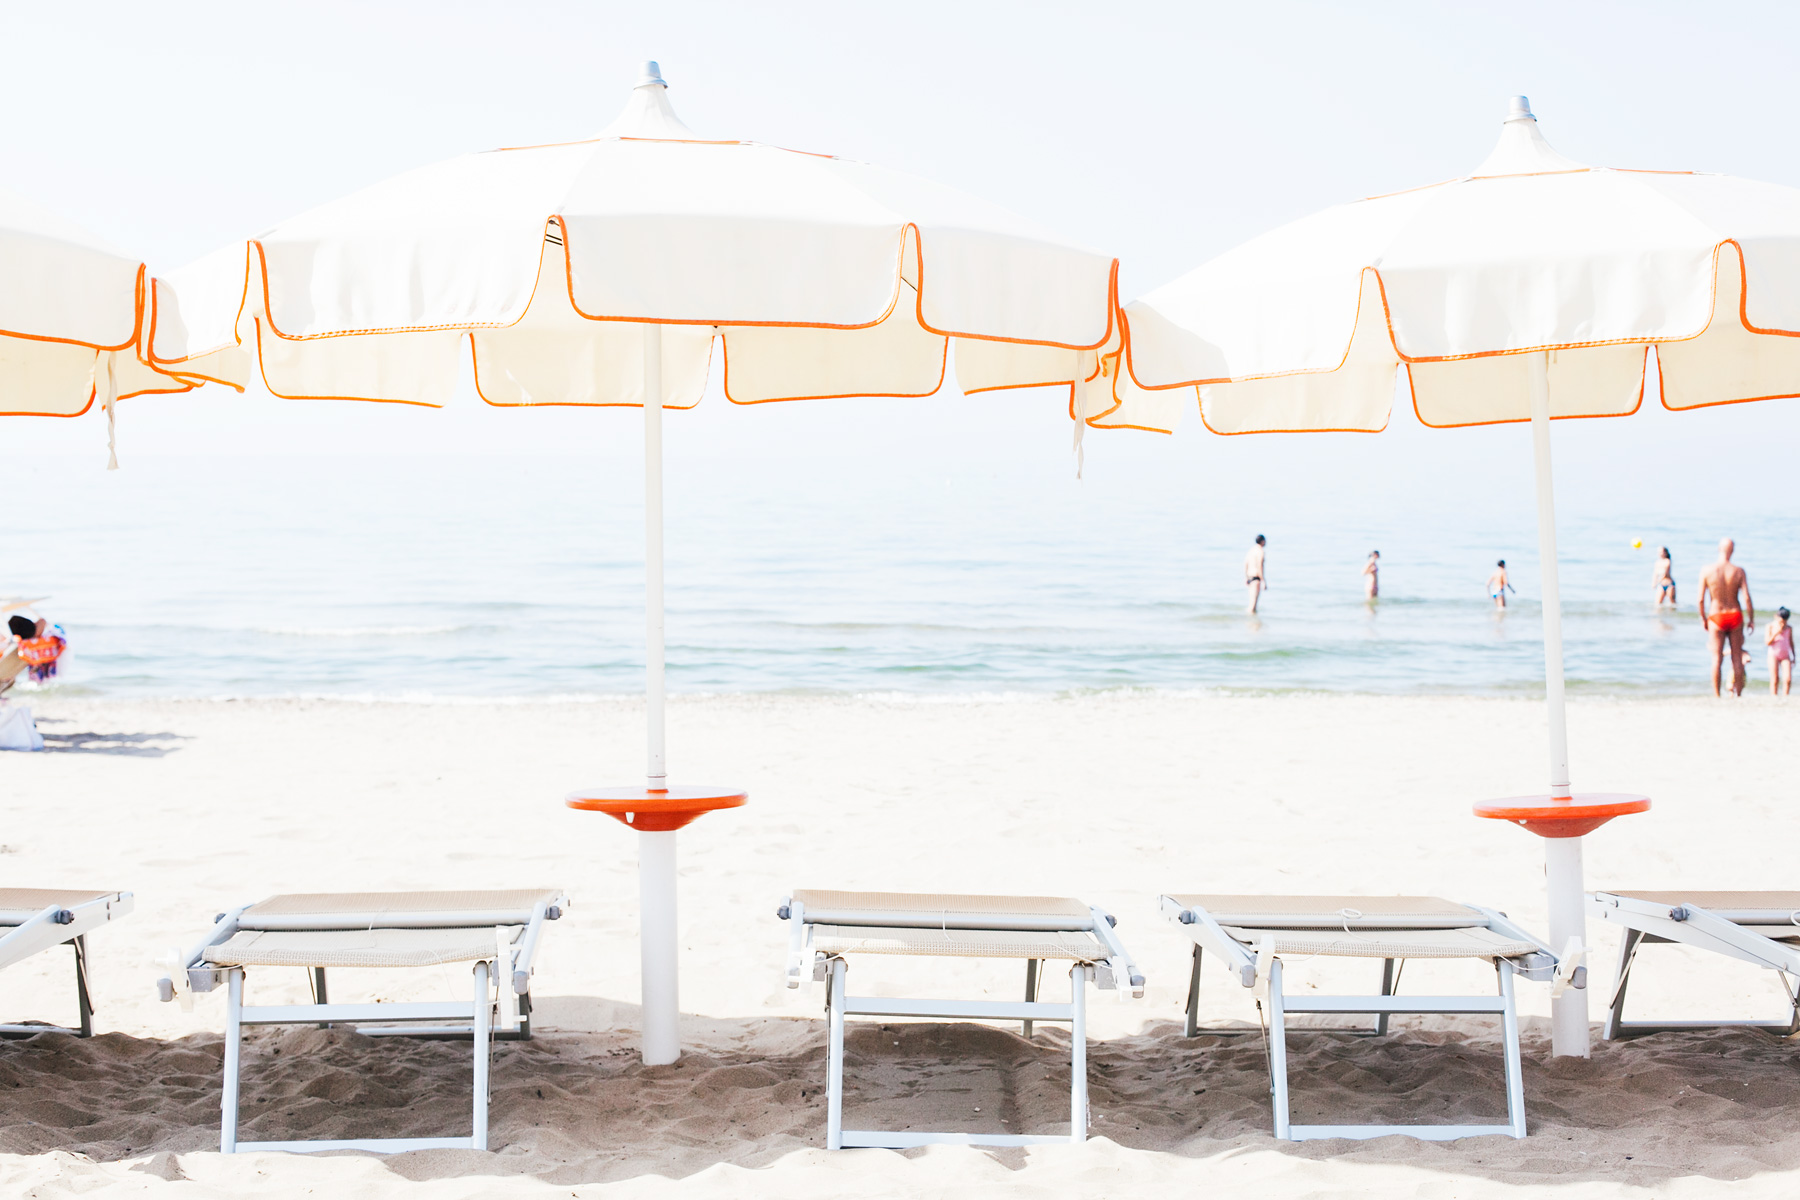 Beach life in Terracina, Italy by Carin Olsson (Paris in Four Months)